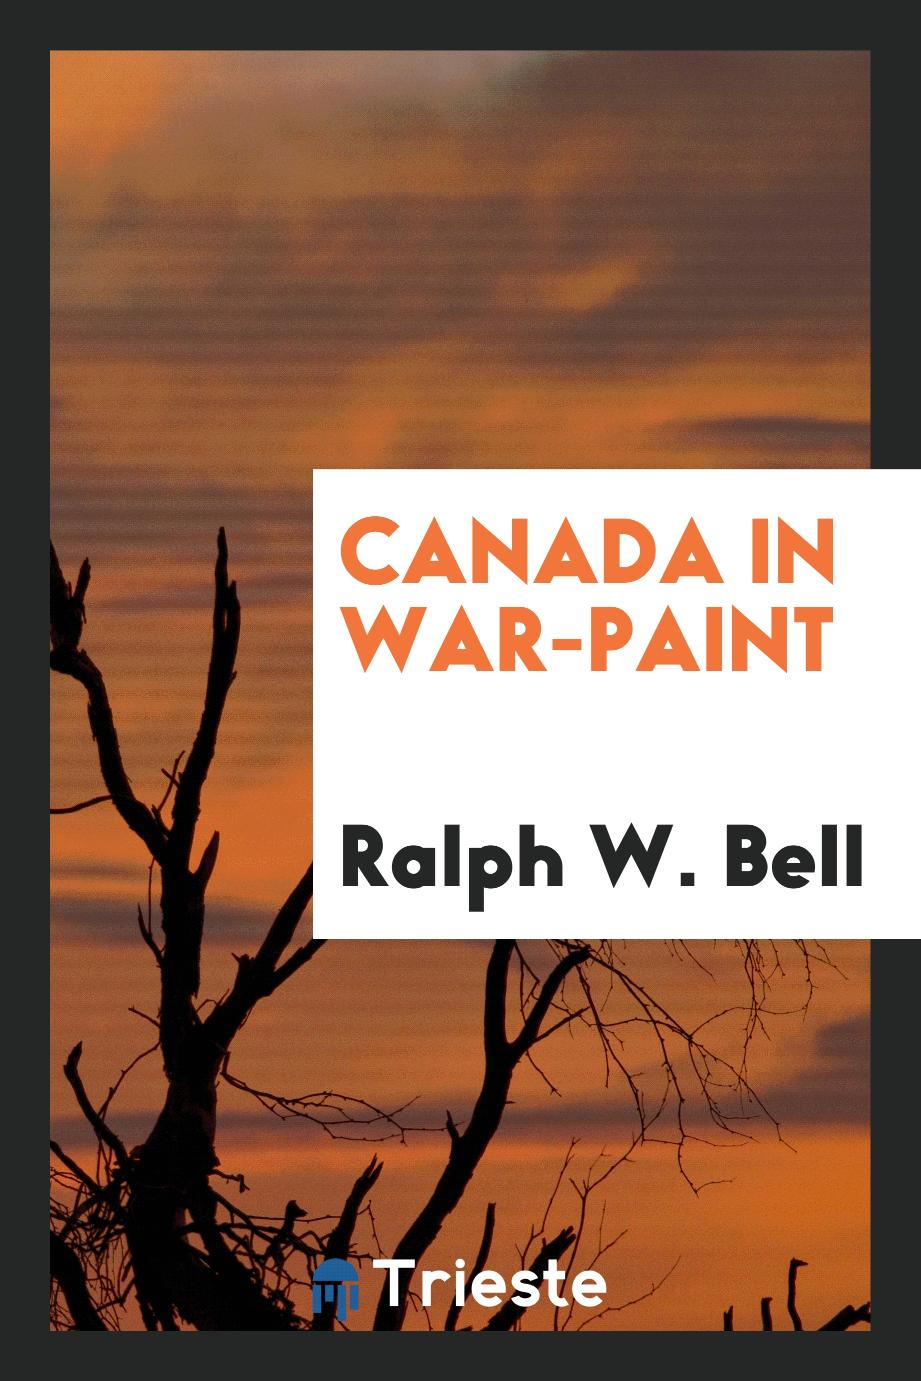 Canada in war-paint